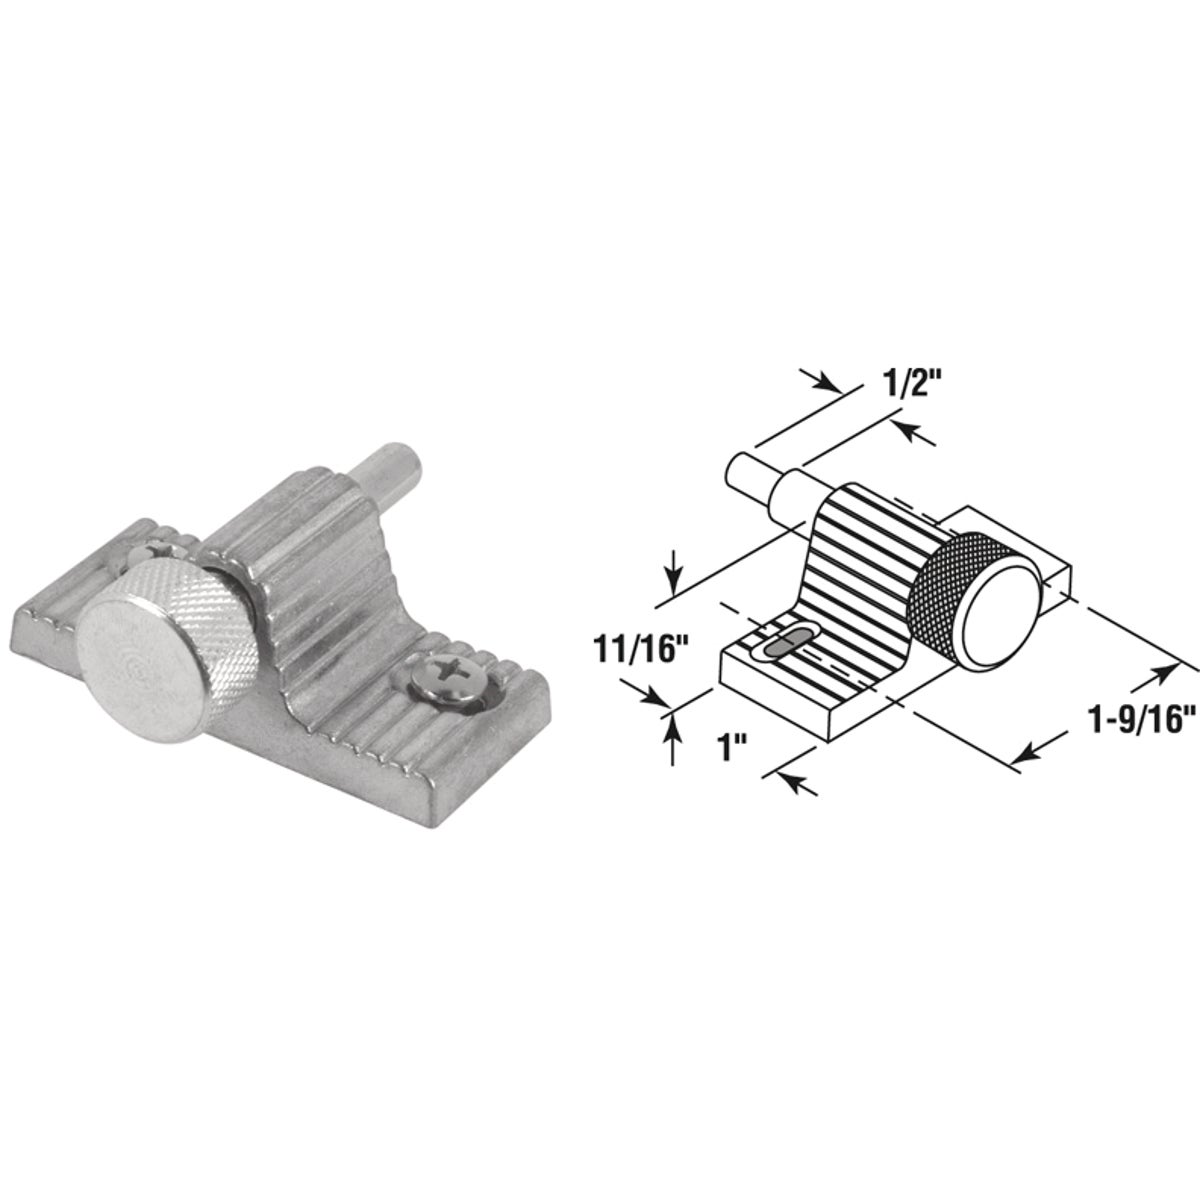 ALUM DOOR SCREW LOCK - U 9848 by Prime Line Products